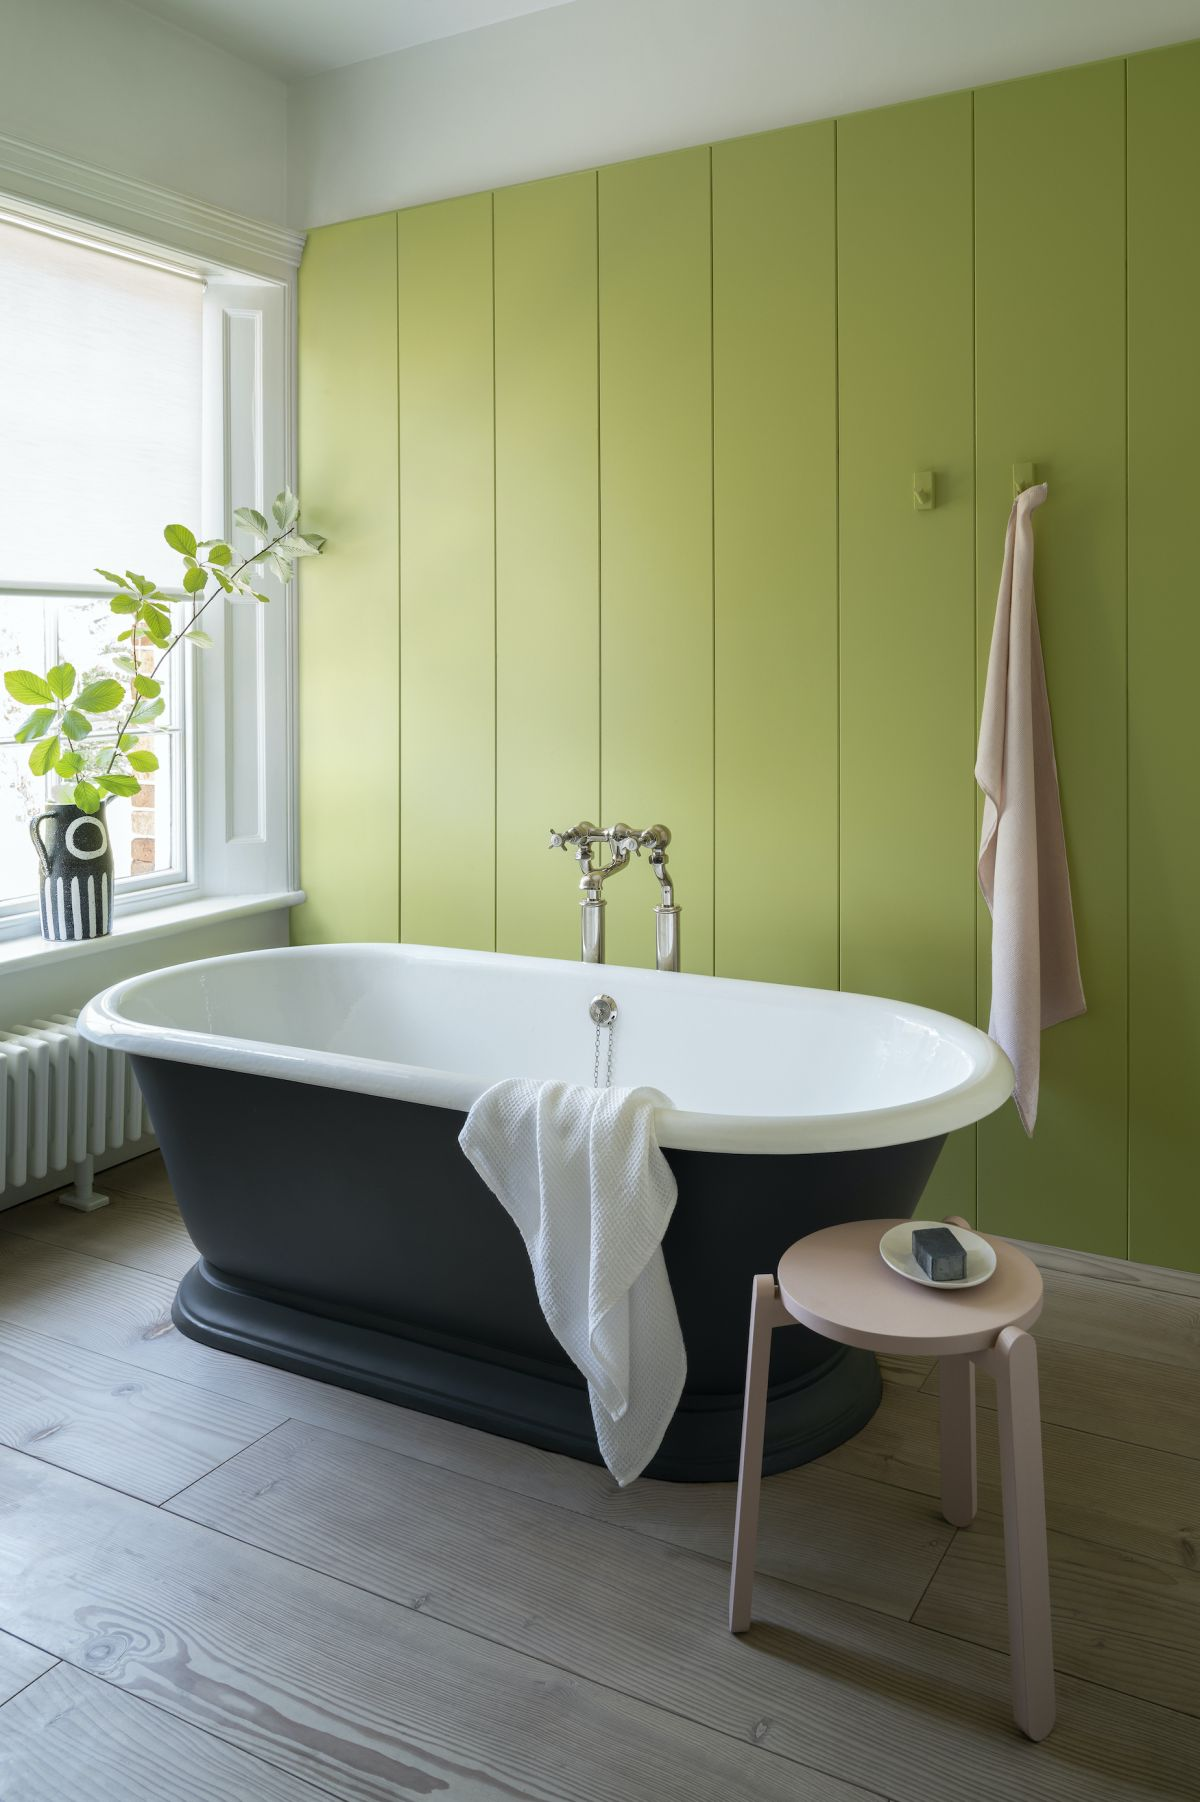 Go green with these 15 stunning green bathrooms to inspire you